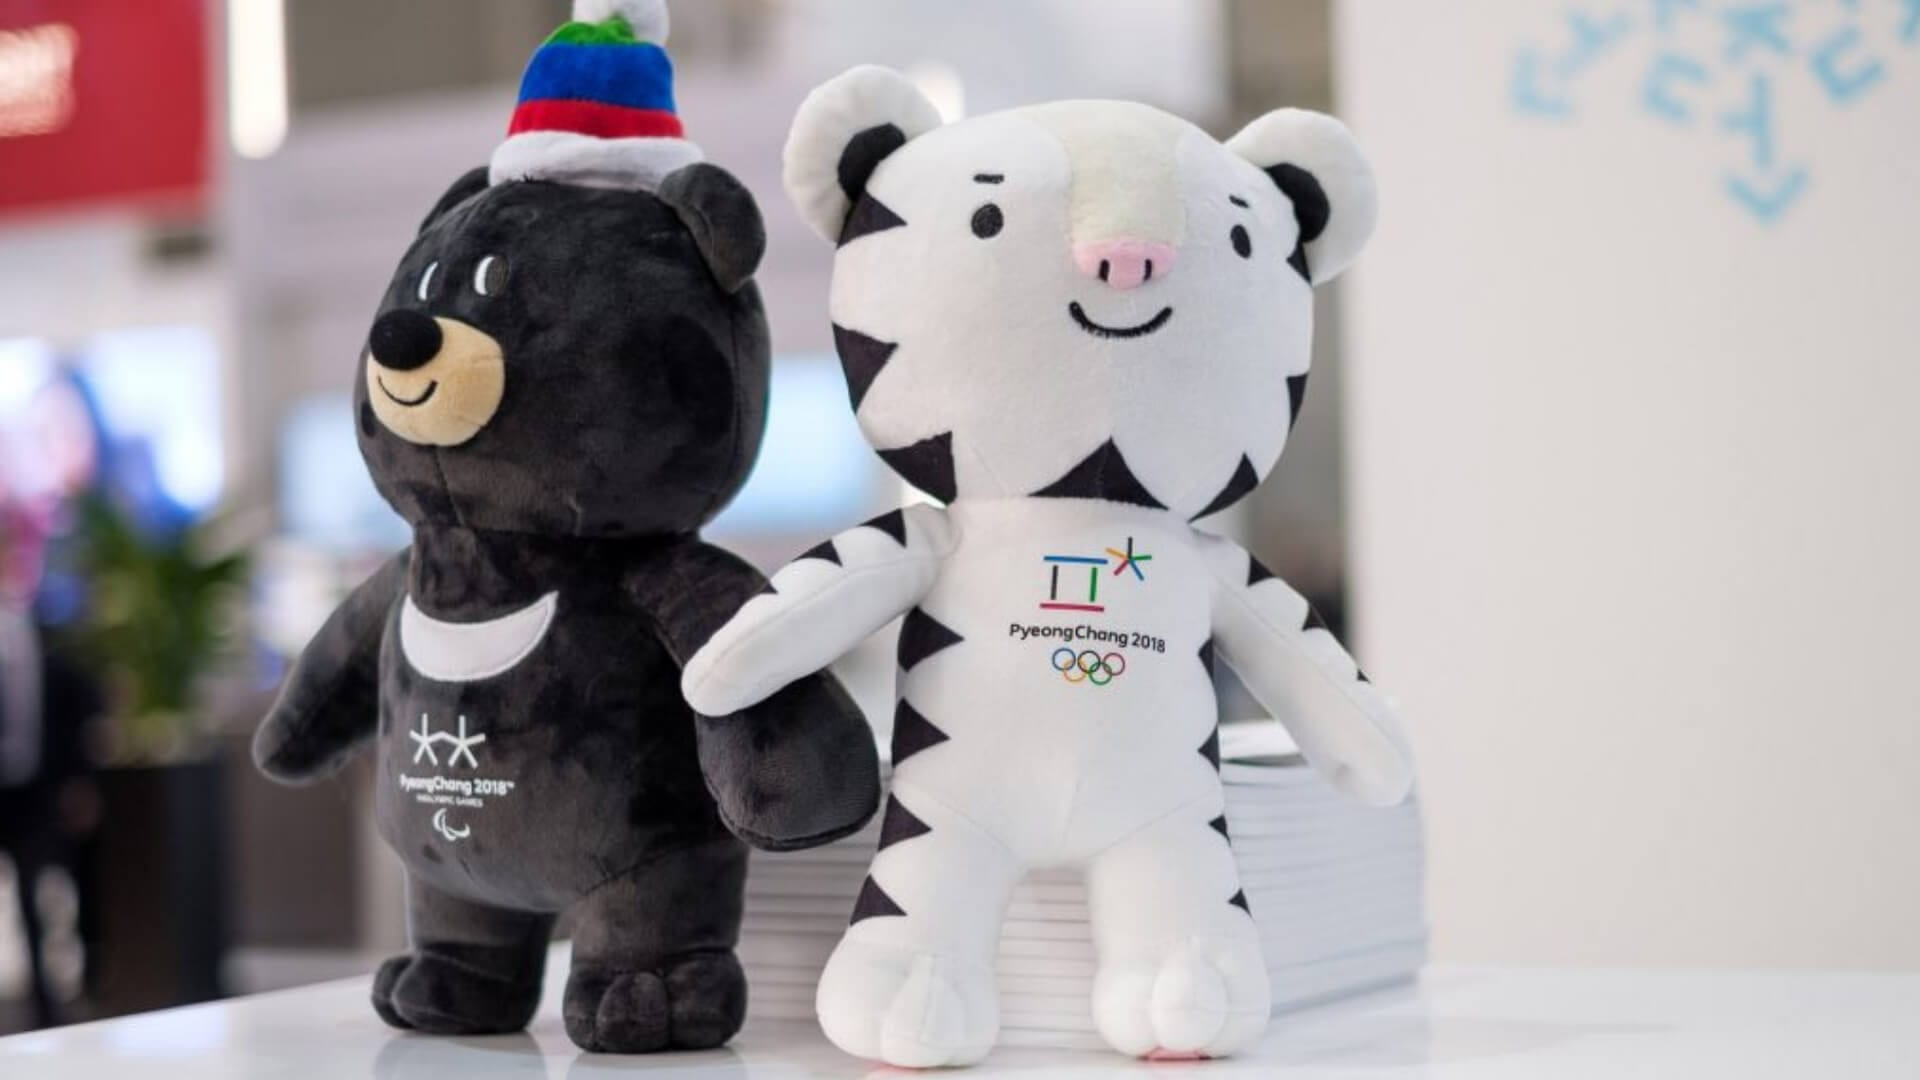 A black and a white bear are standing on a table in korea.